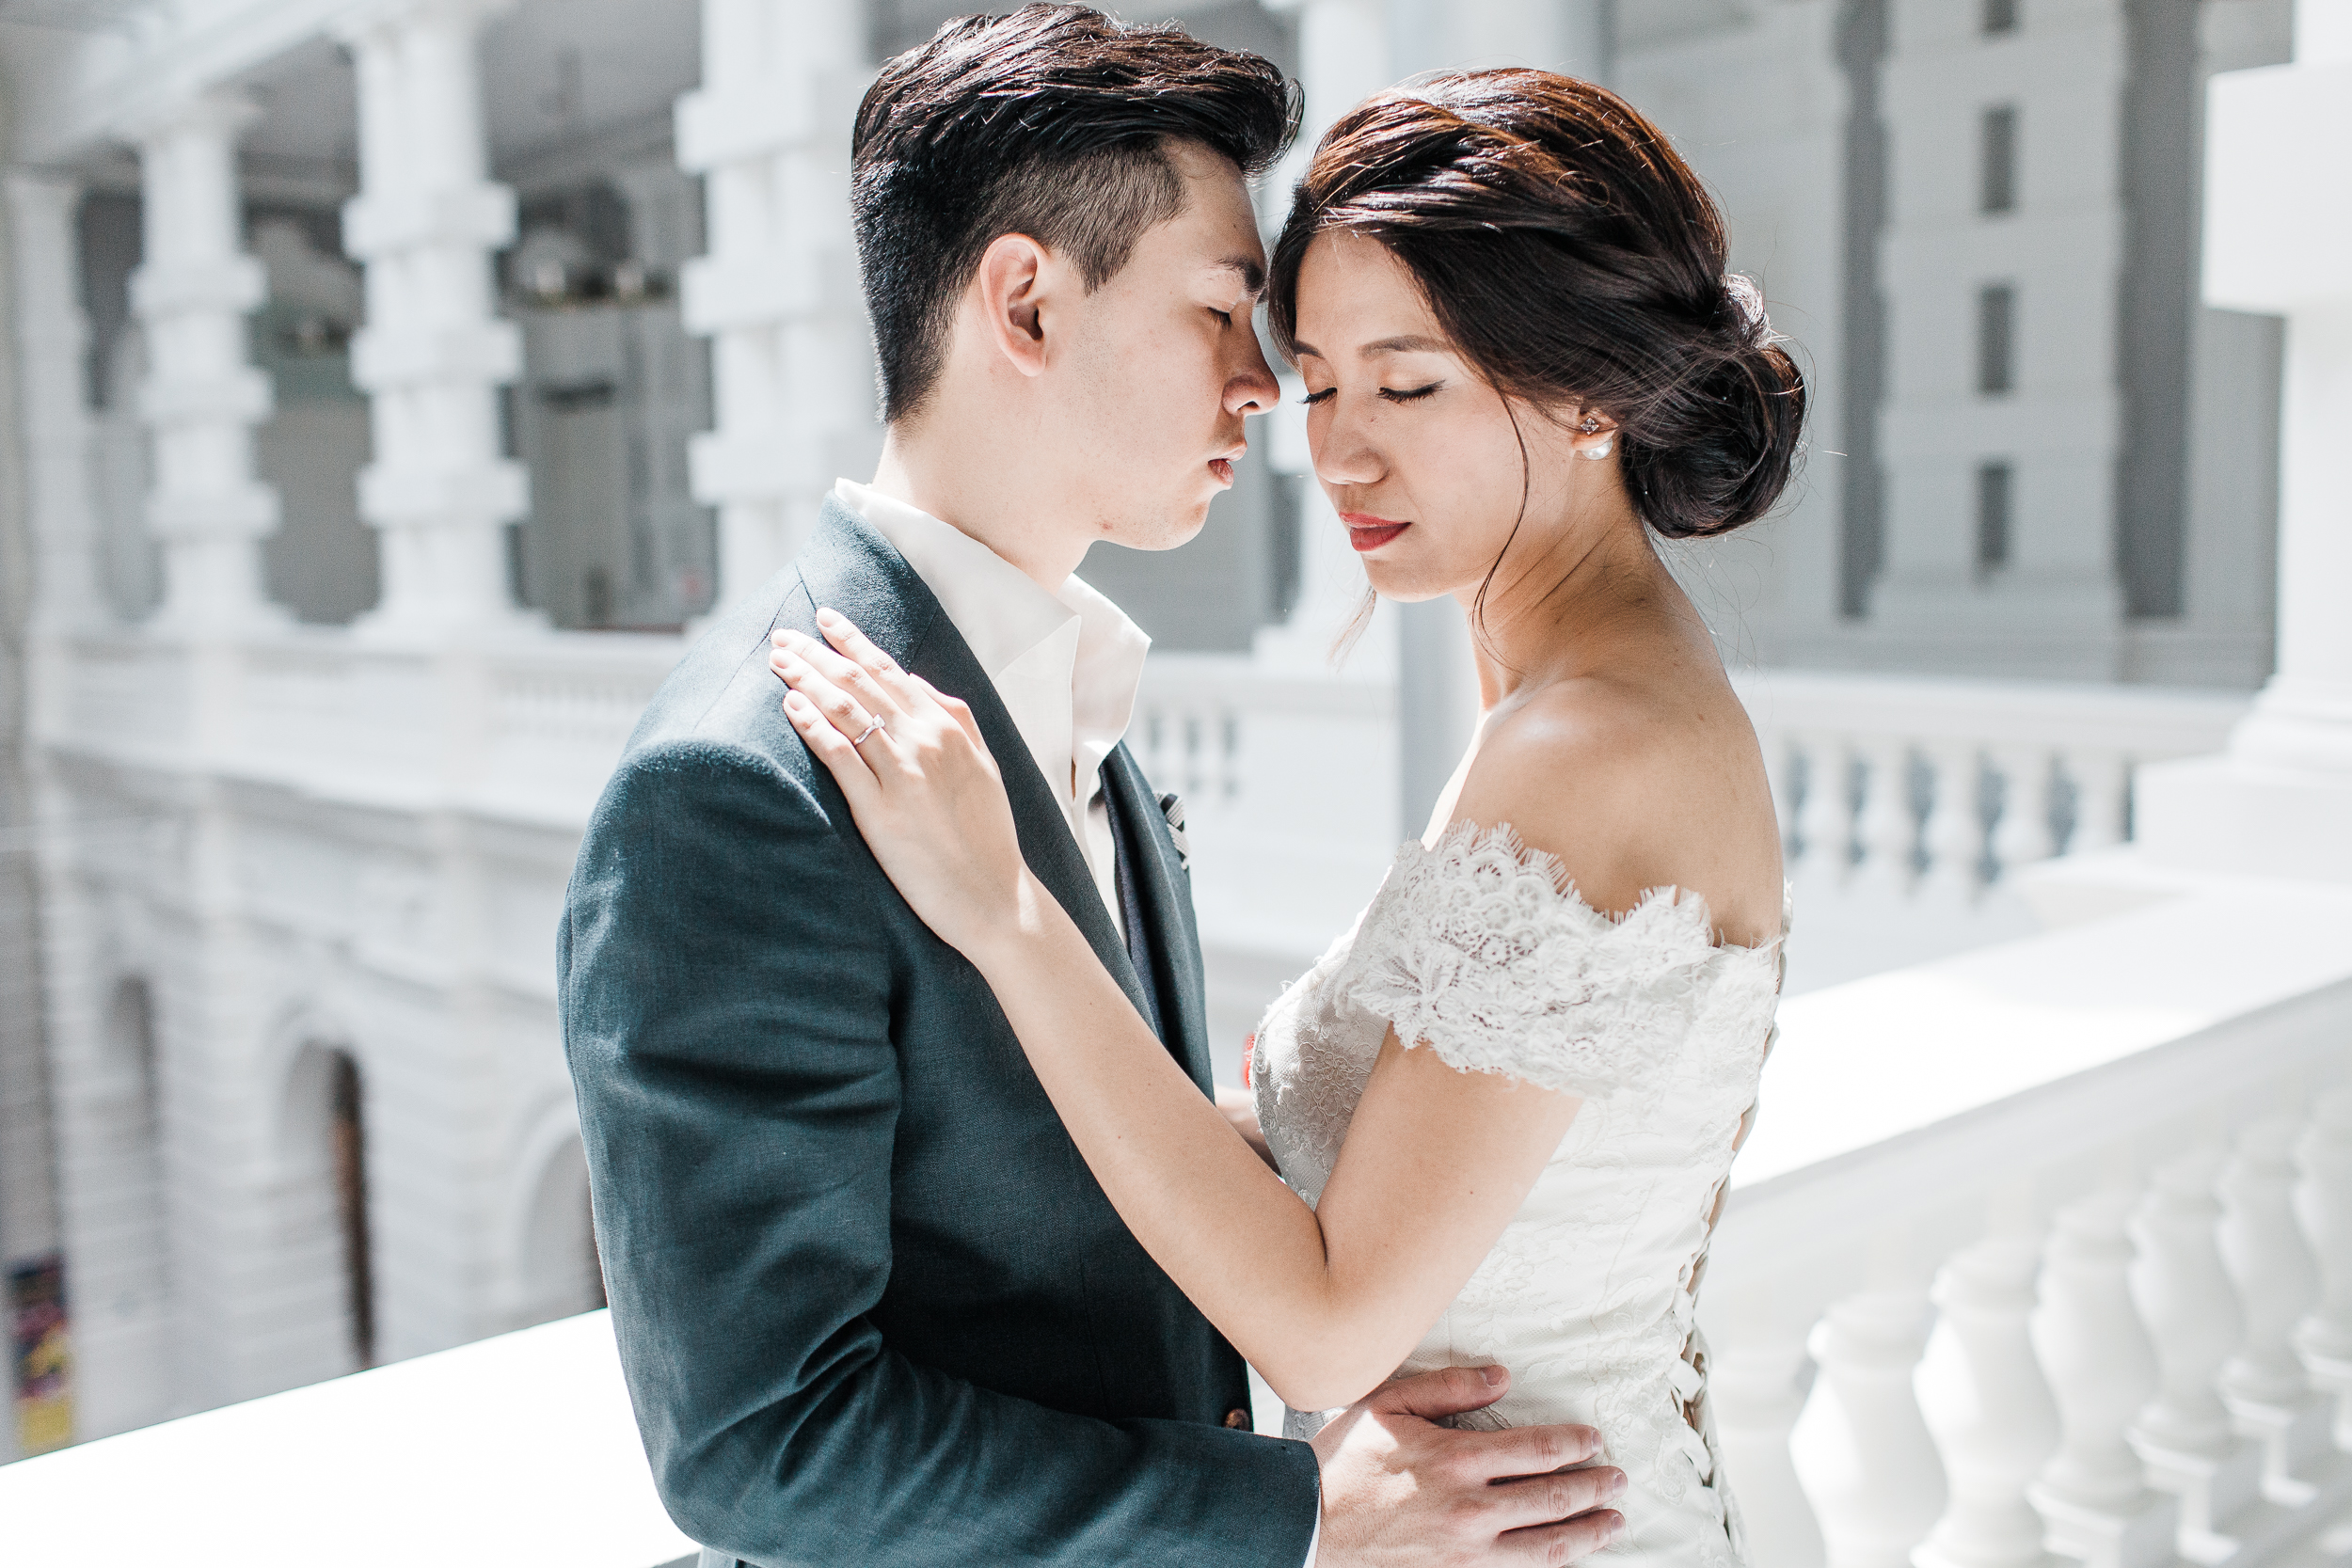 Singapore+Pre+Wedding+Photographer+Jeremiah+Christina-0021.jpg